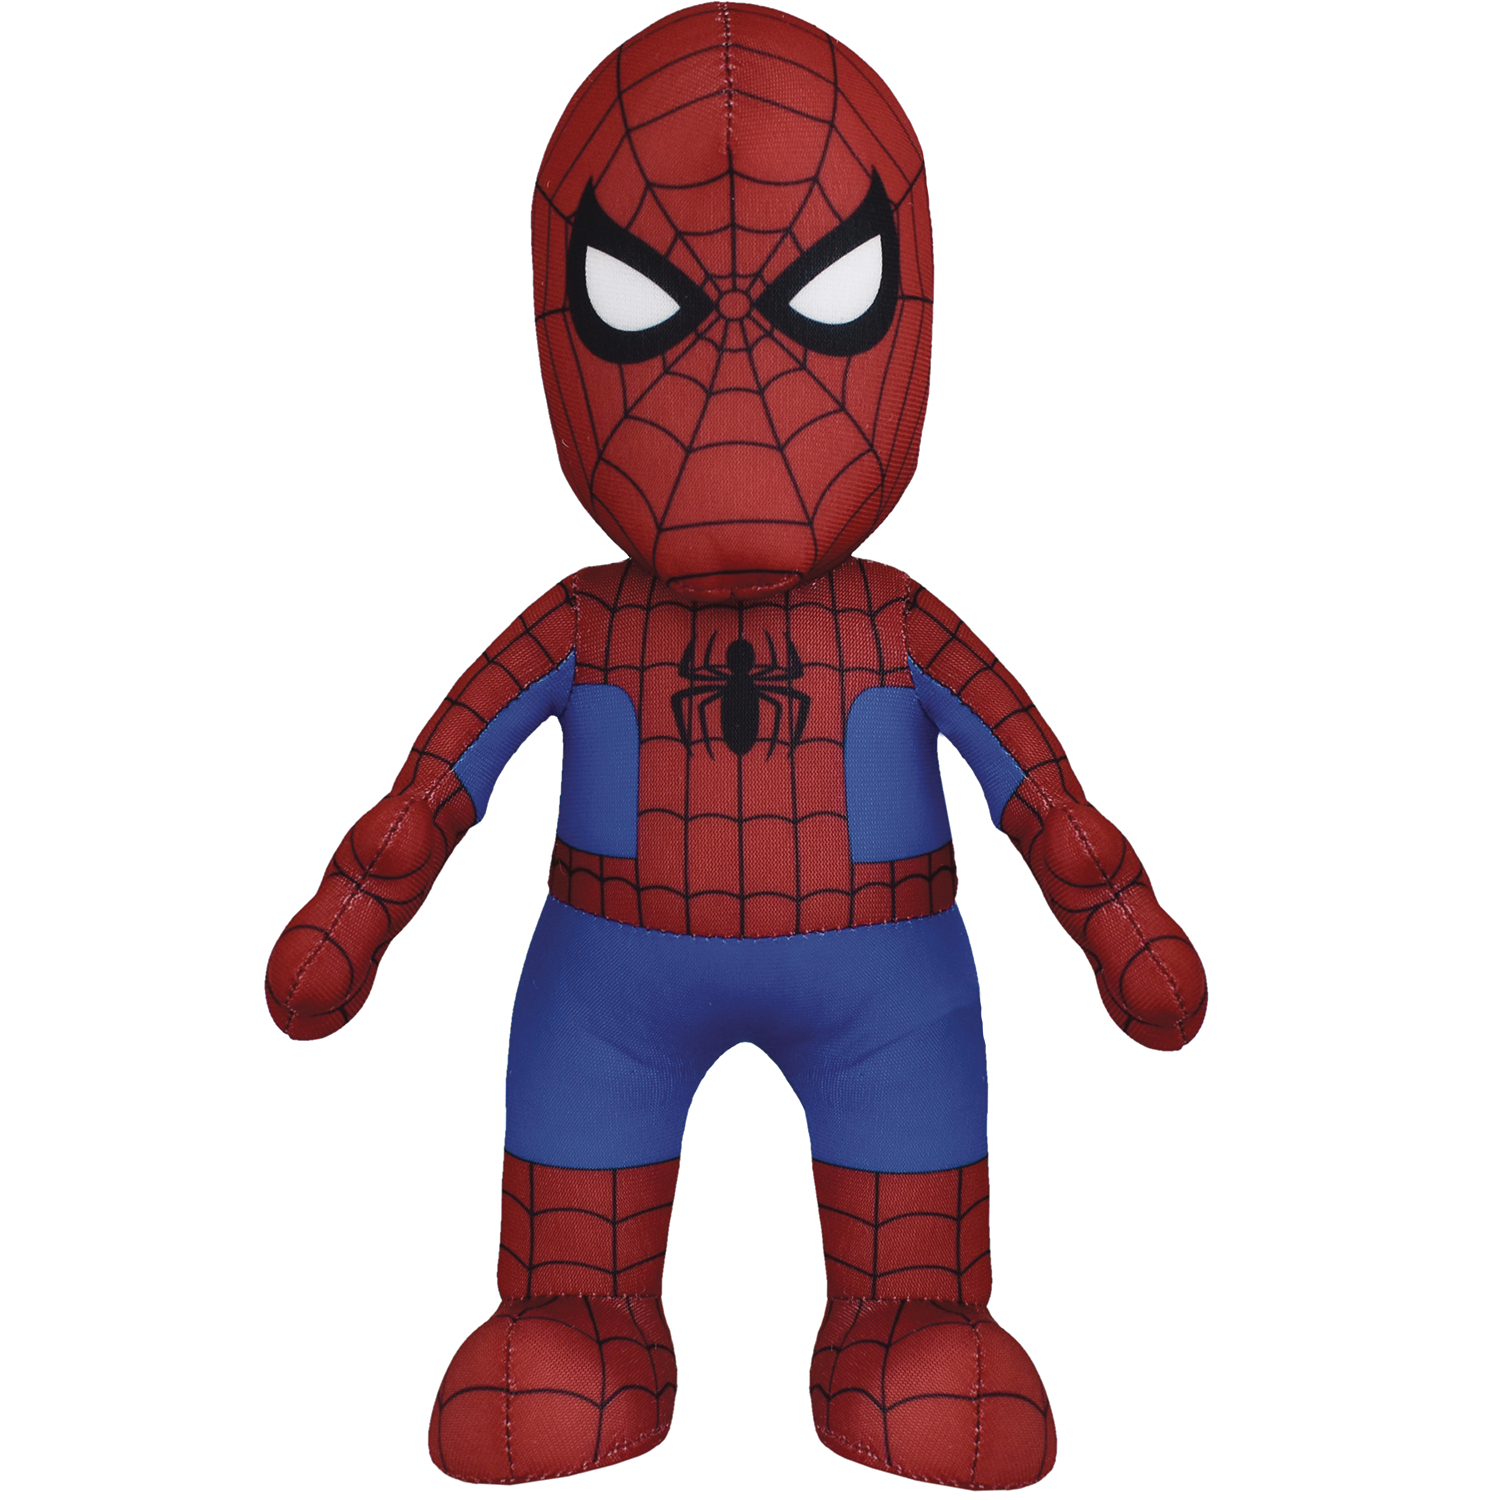 MARVEL HEROES SPIDER-MAN 10IN PLUSH FIGURE